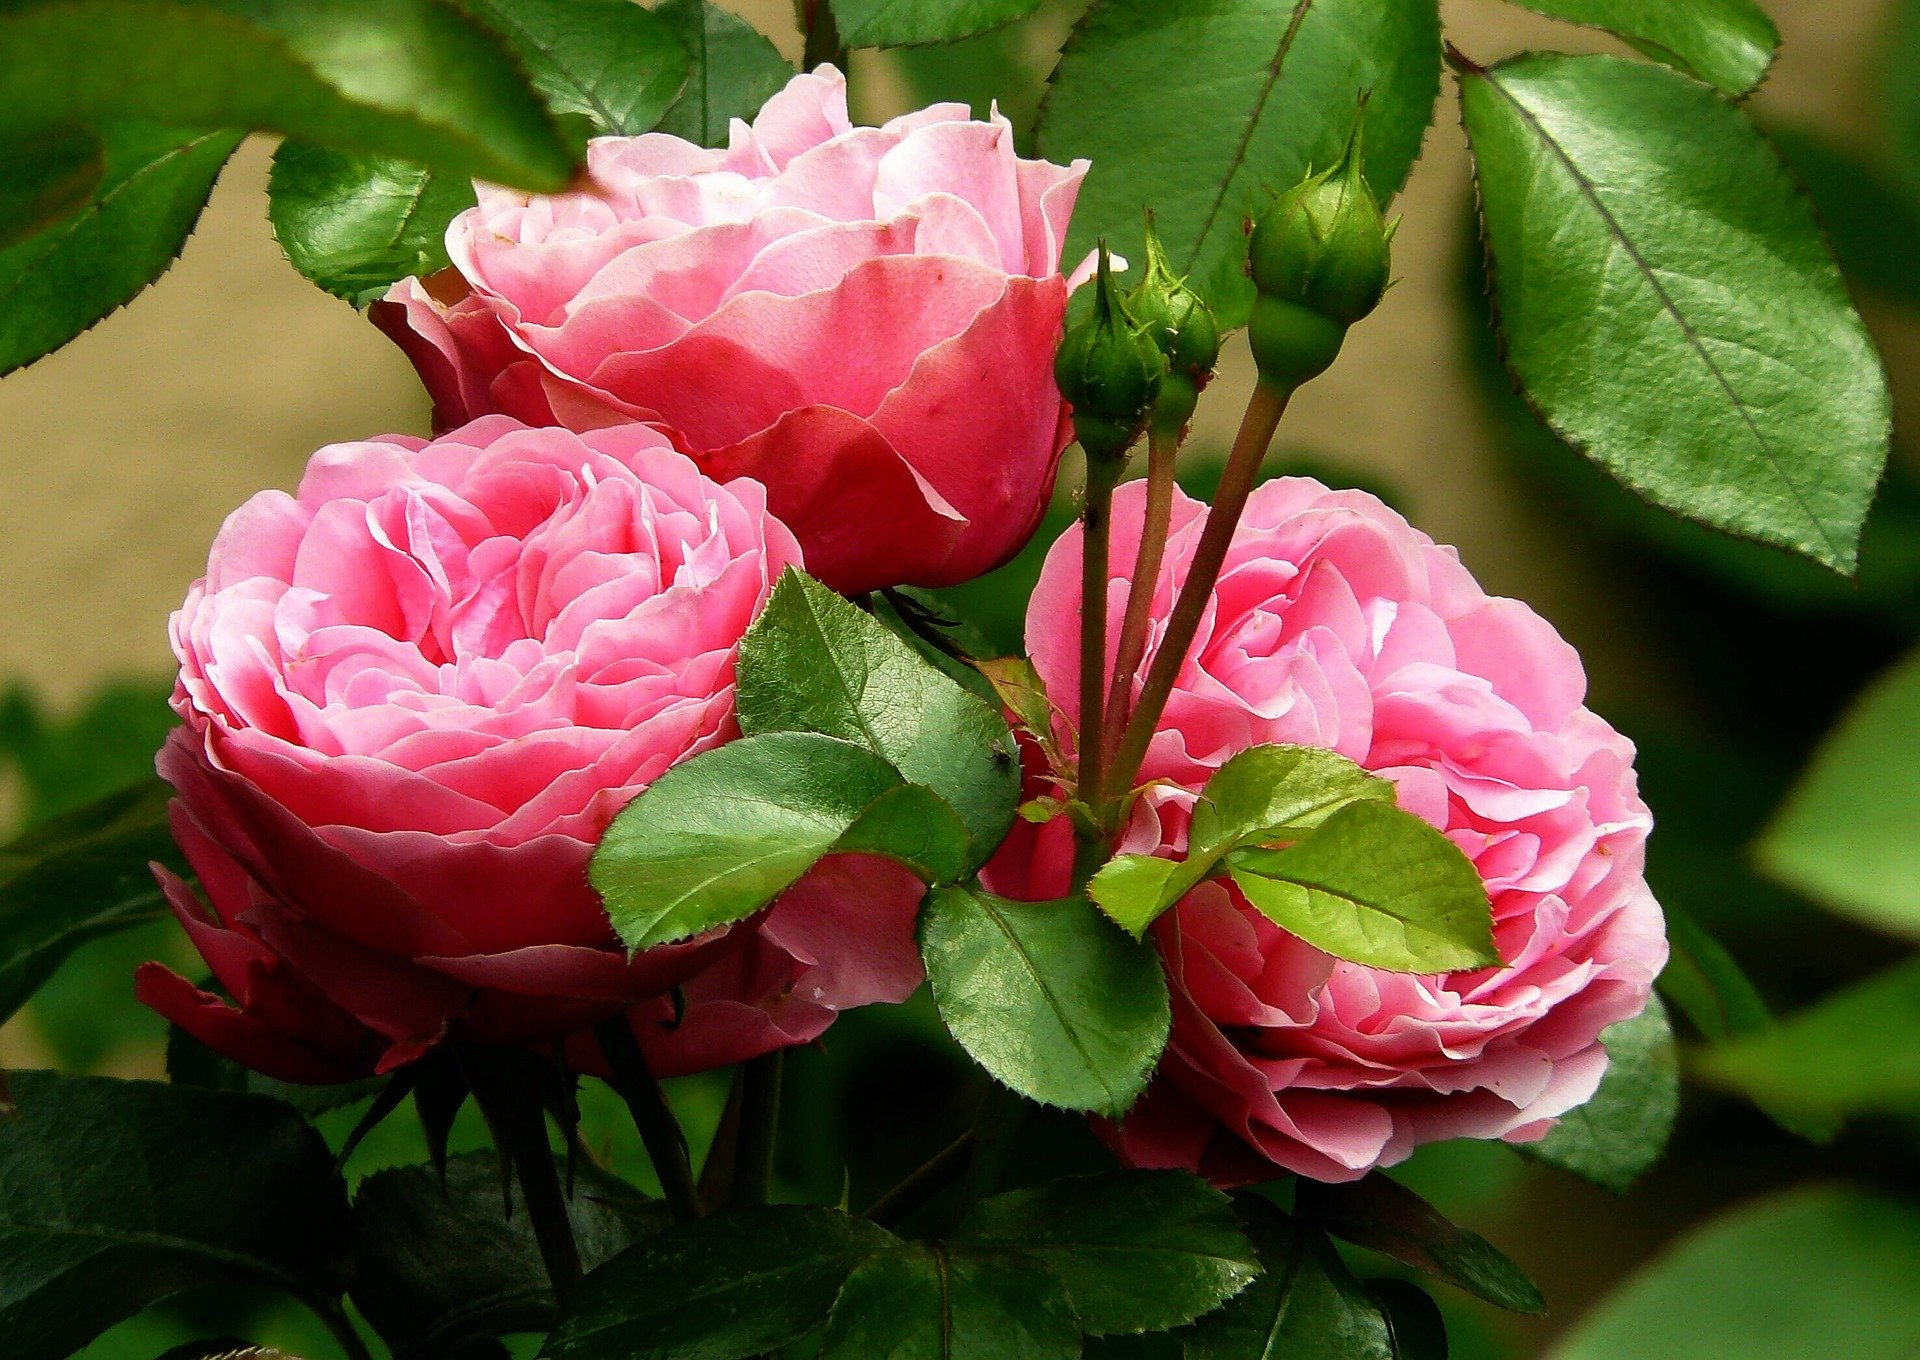 three roses in rose cluster in a garden